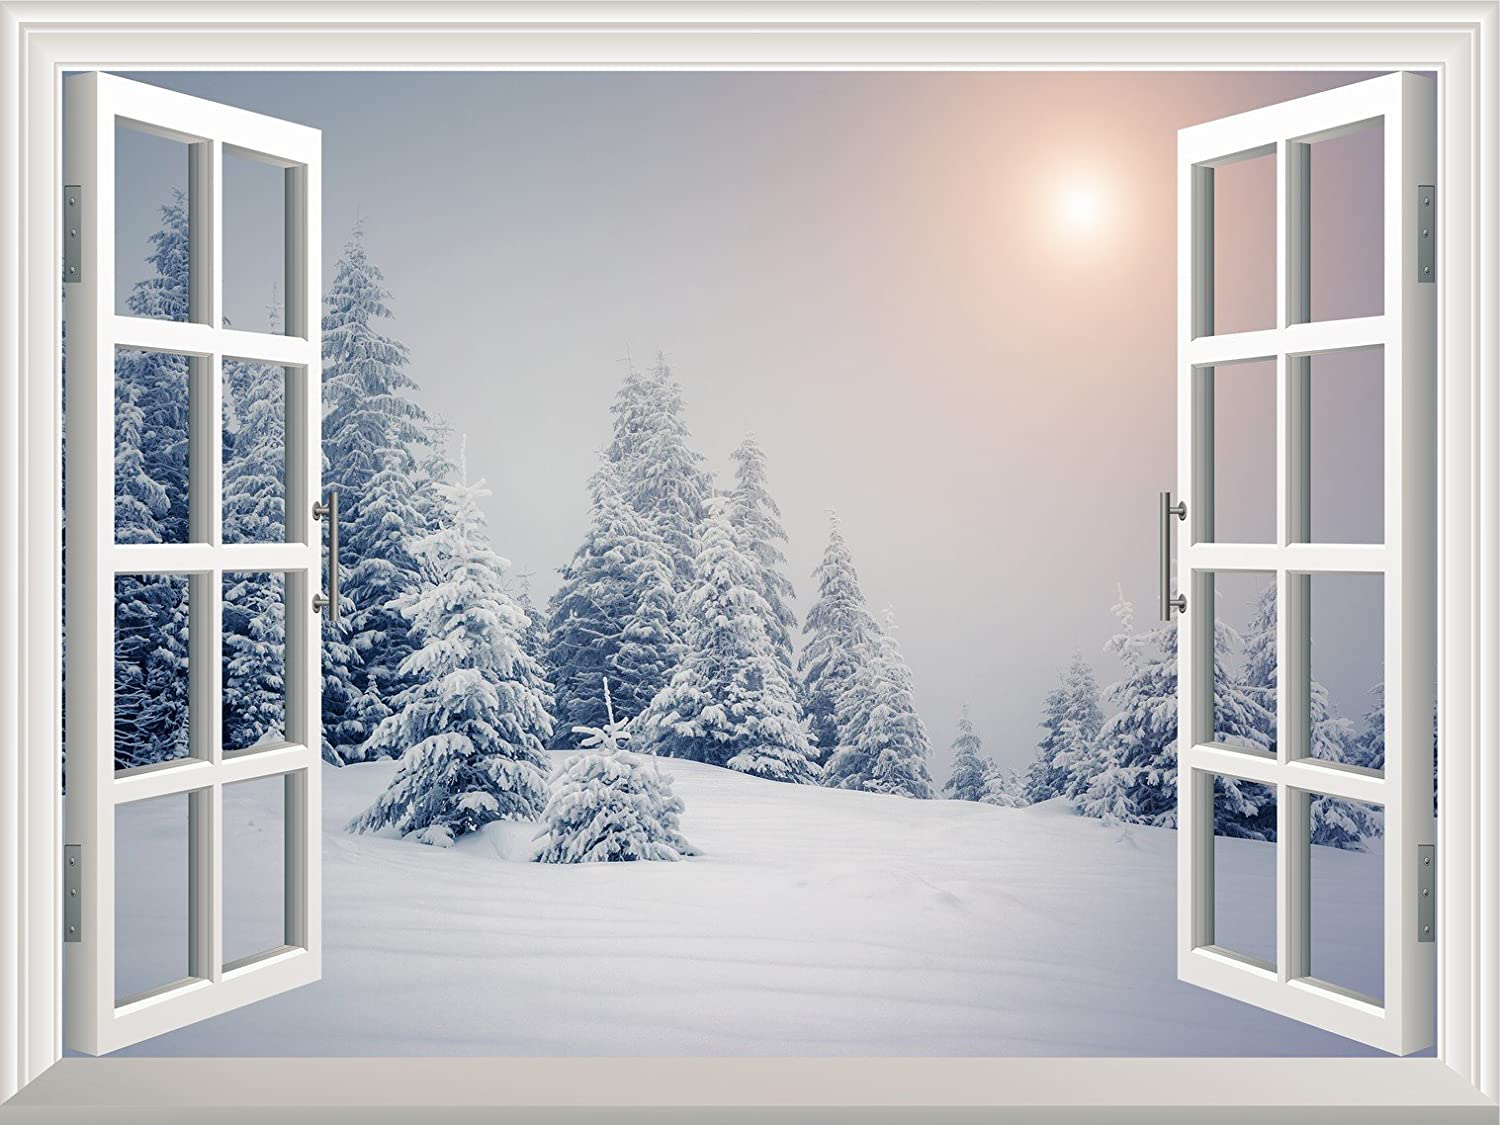 wall26 com art prints framed art canvas prints greeting wall26 removable wall sticker wall mural pine trees covered by white snow out of the open window wall decorr 36